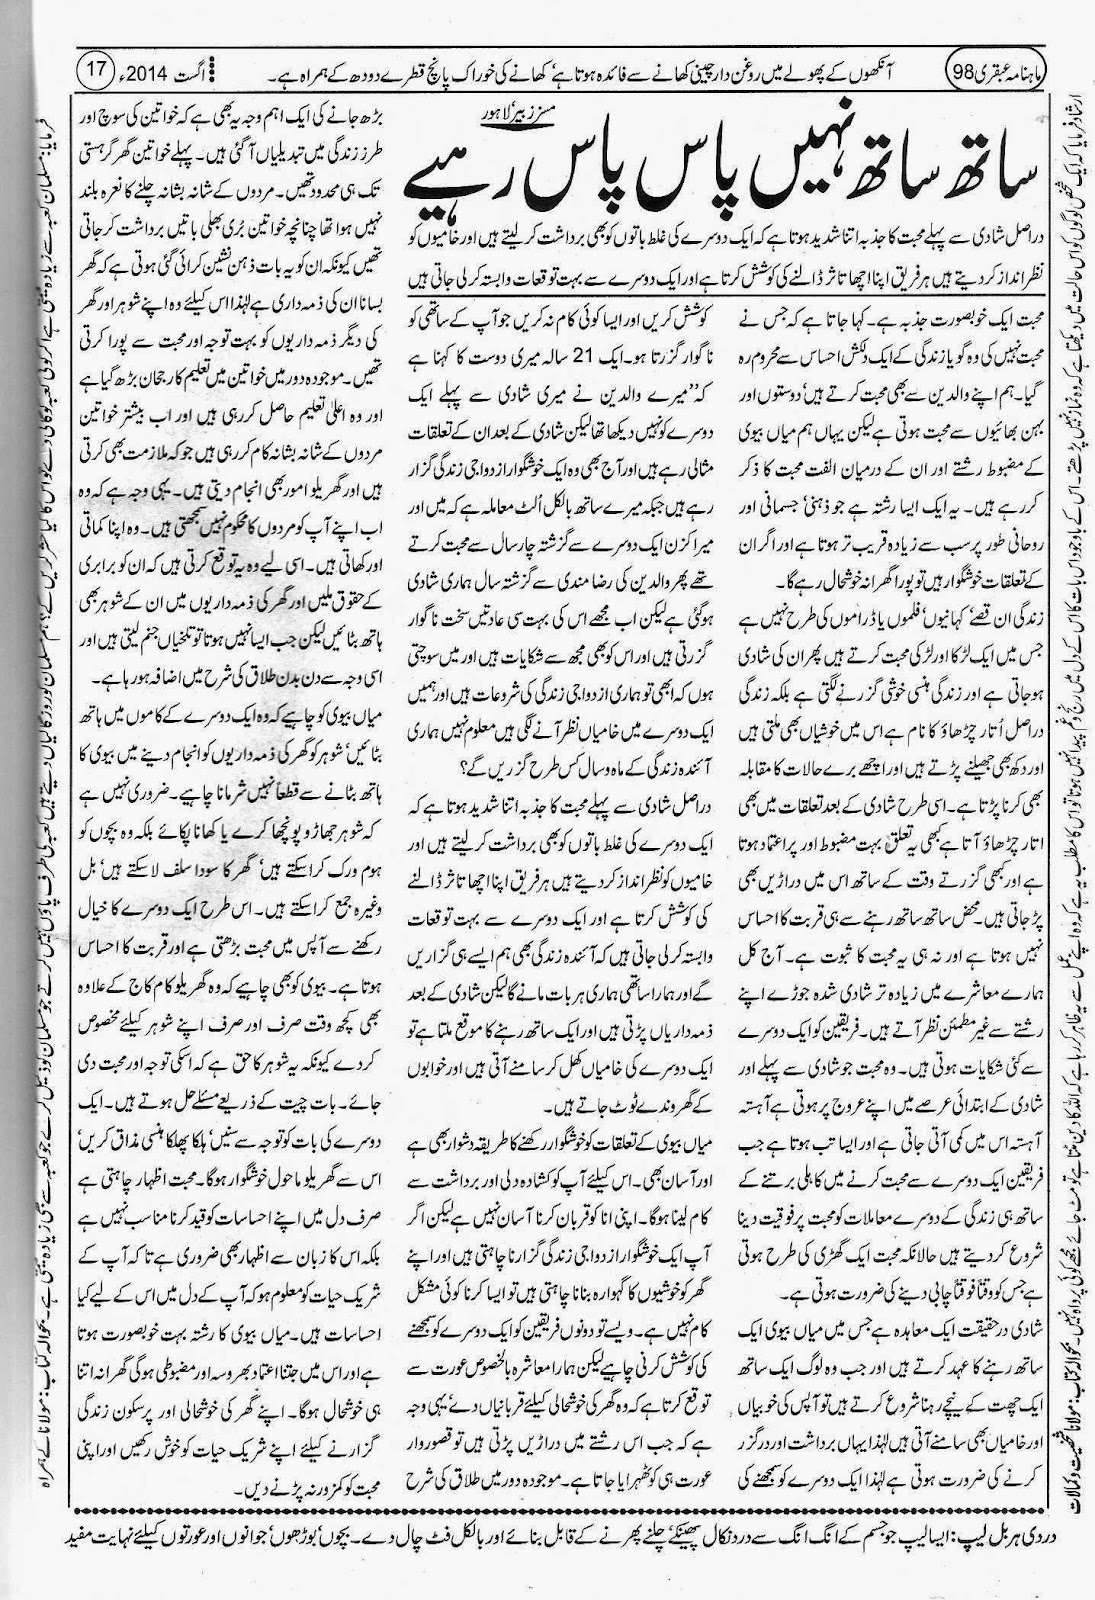 Ubqari August 2014 Page 17